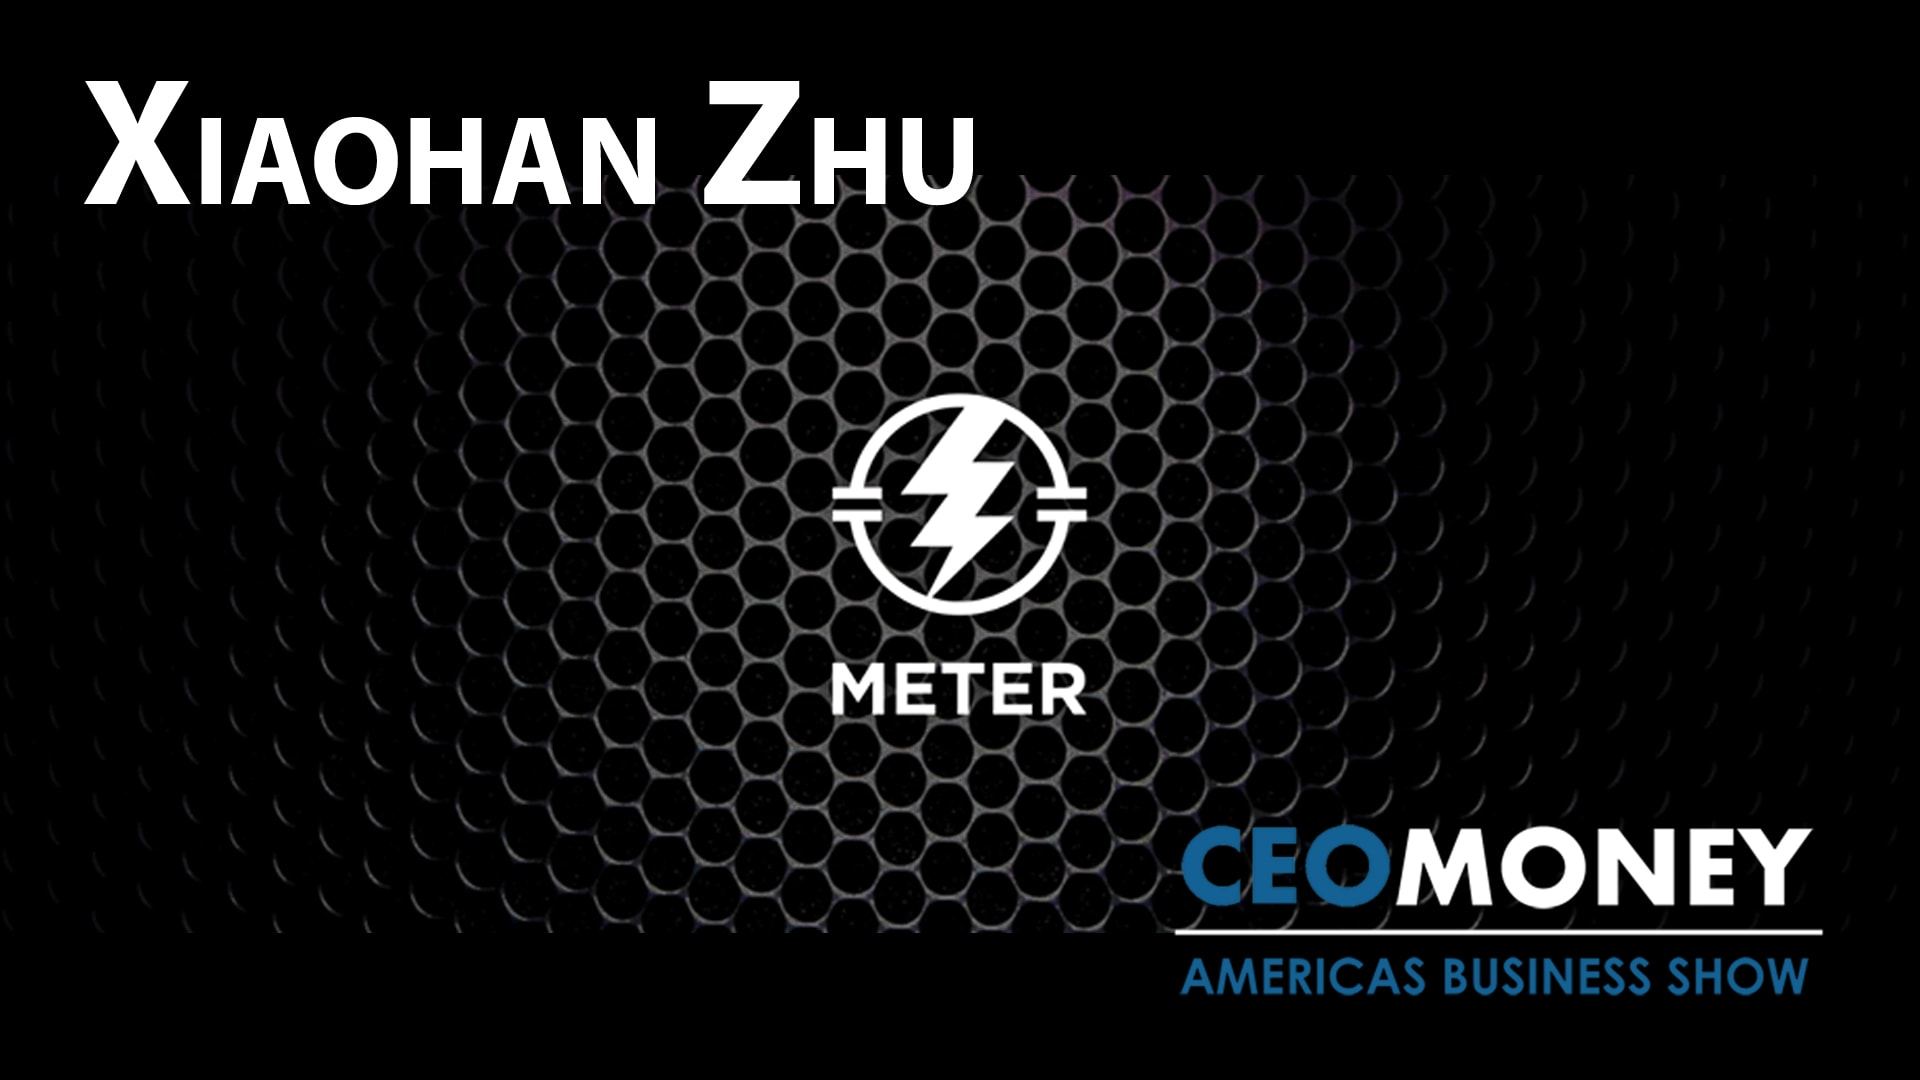 Xiaohan Zhu created Meter to be a value stable digital currency with high transaction performance